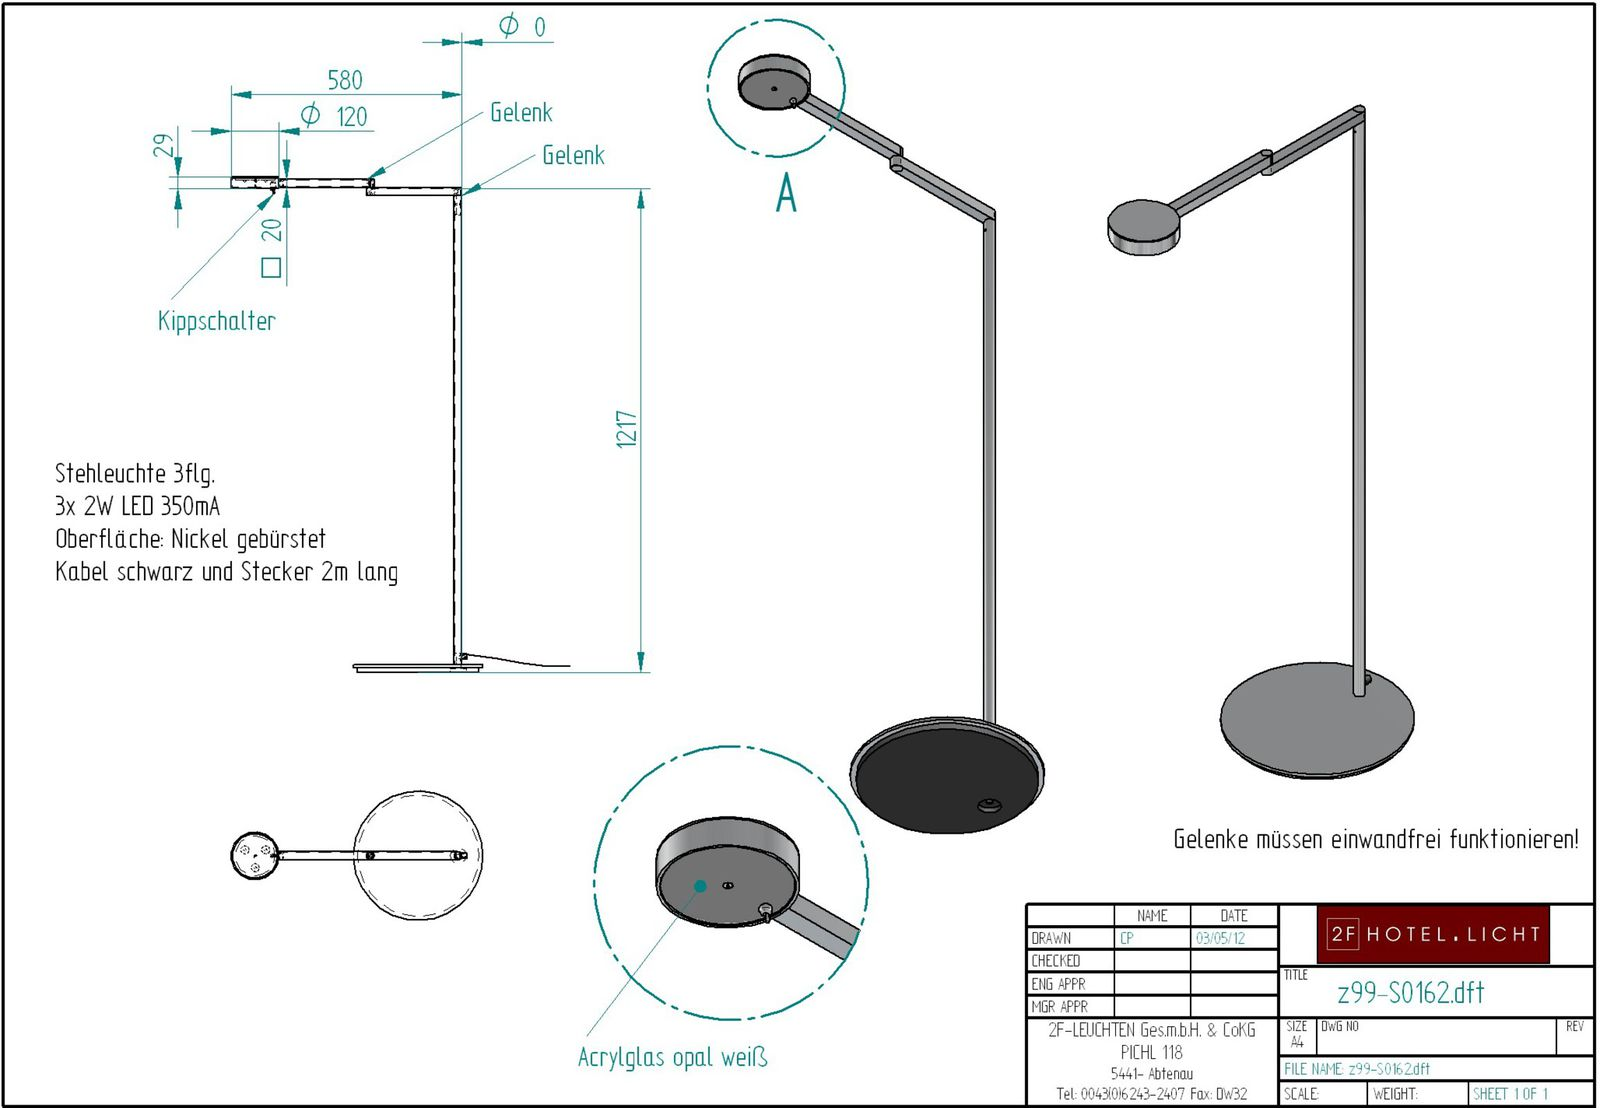 floor lamp 3 flg., height=1200mm, wide=780mm, surface: brushed nickel, cable black with plug, techn. details: 3x 2W LED 350mA